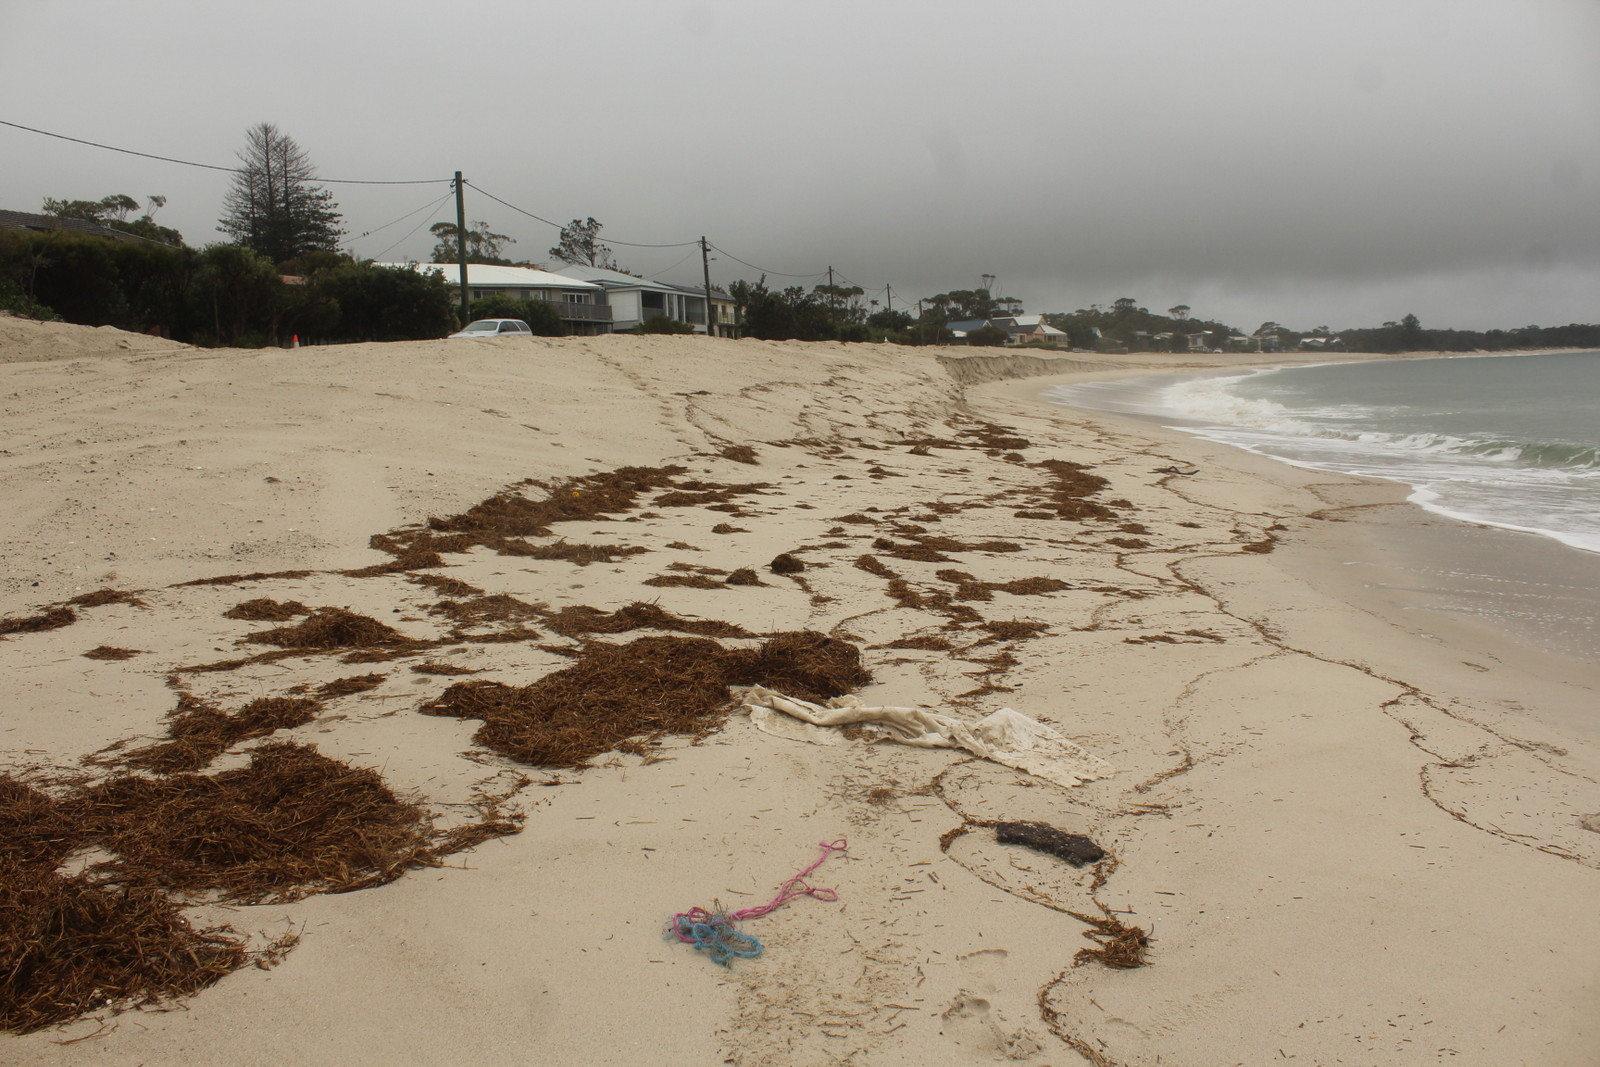 Debris and erosion on the beach.